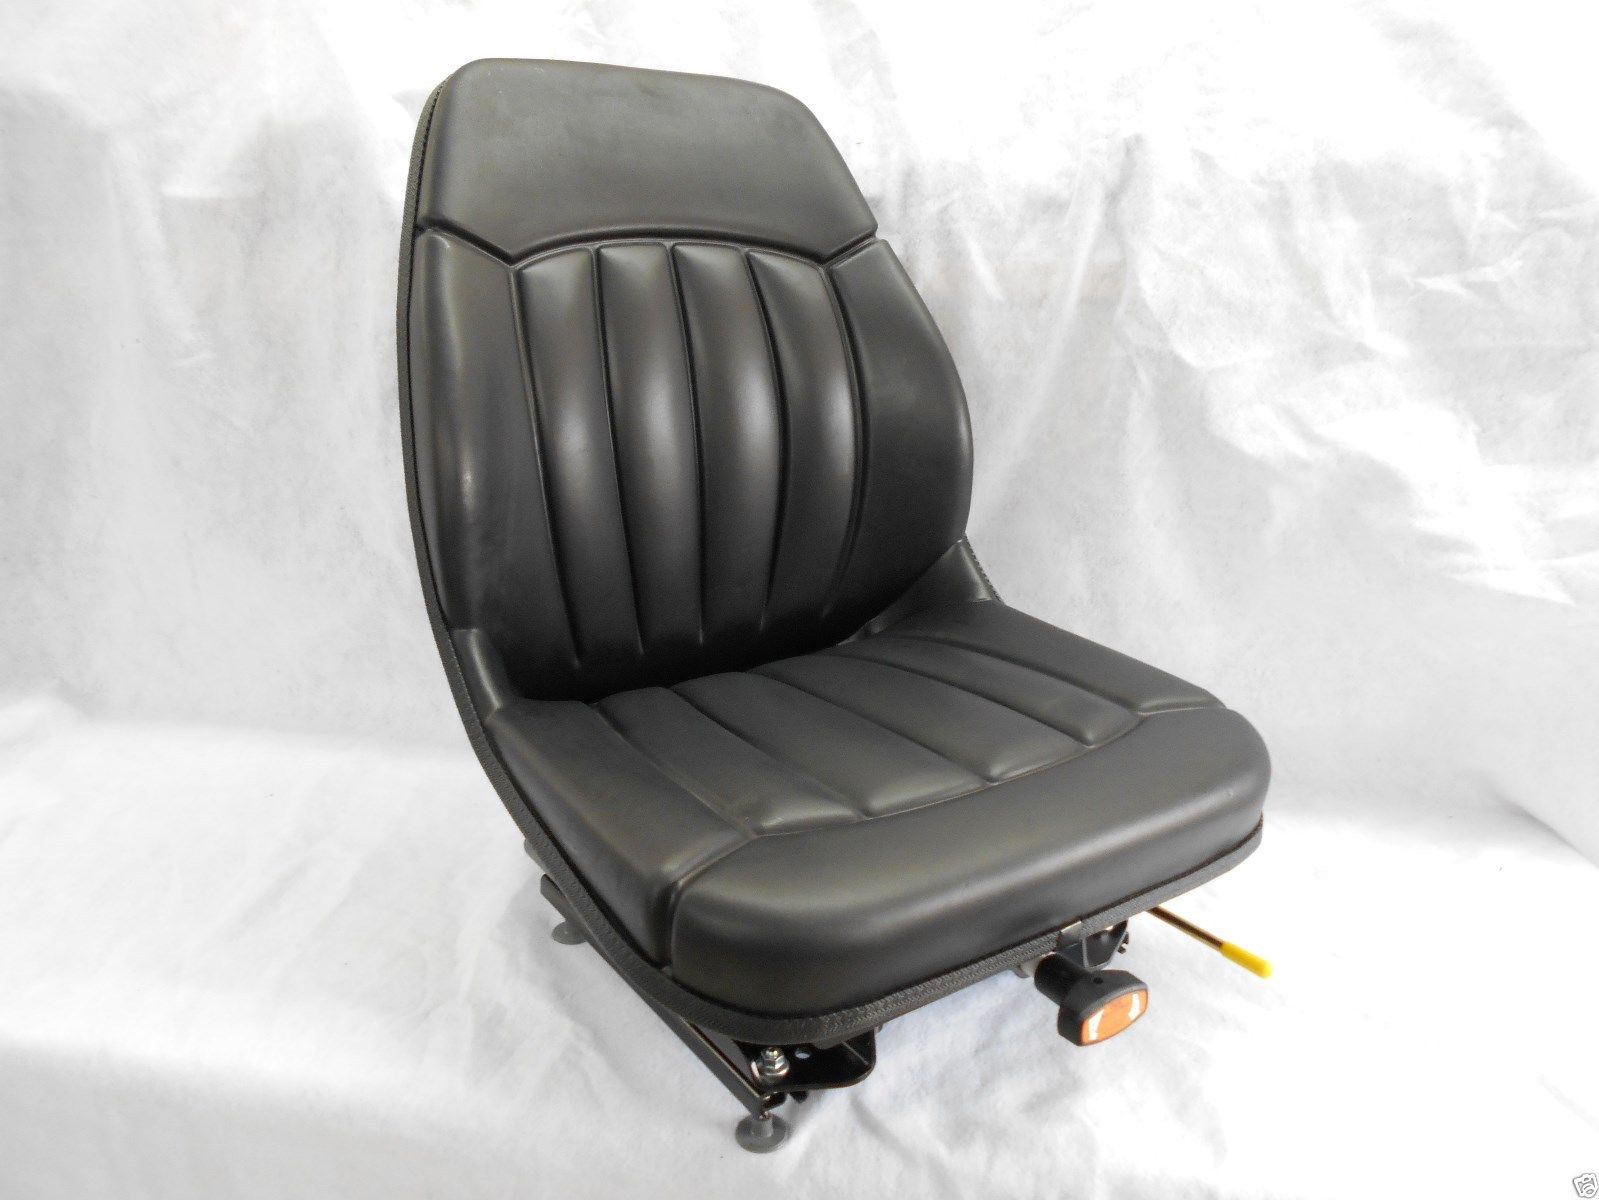 BLACK SUSPENSION SEAT BOBCAT S130, S150, S160, S175, S185, S205, S220, SKID  STEER #OM